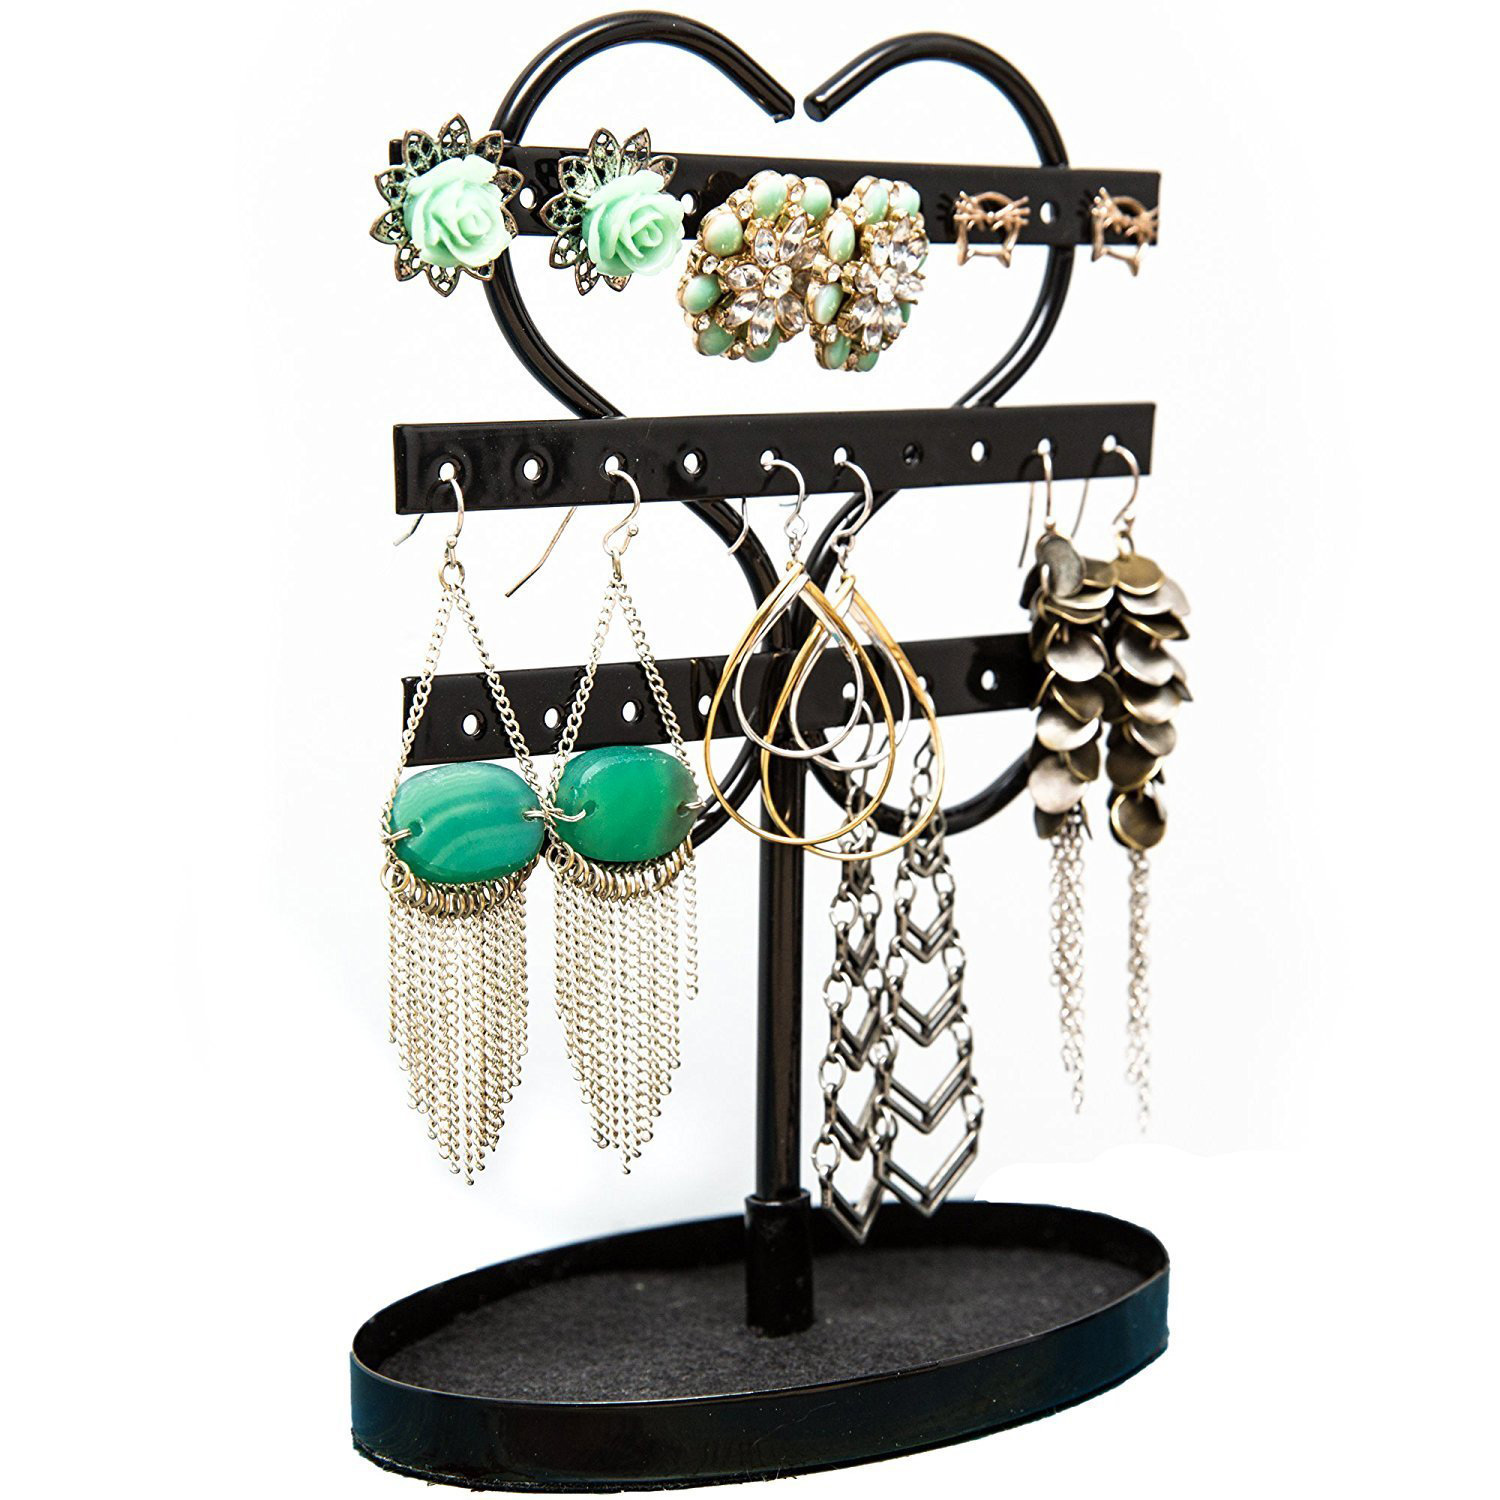 The 15 best stud earring holder zen merchandiser for What metal is best for jewelry